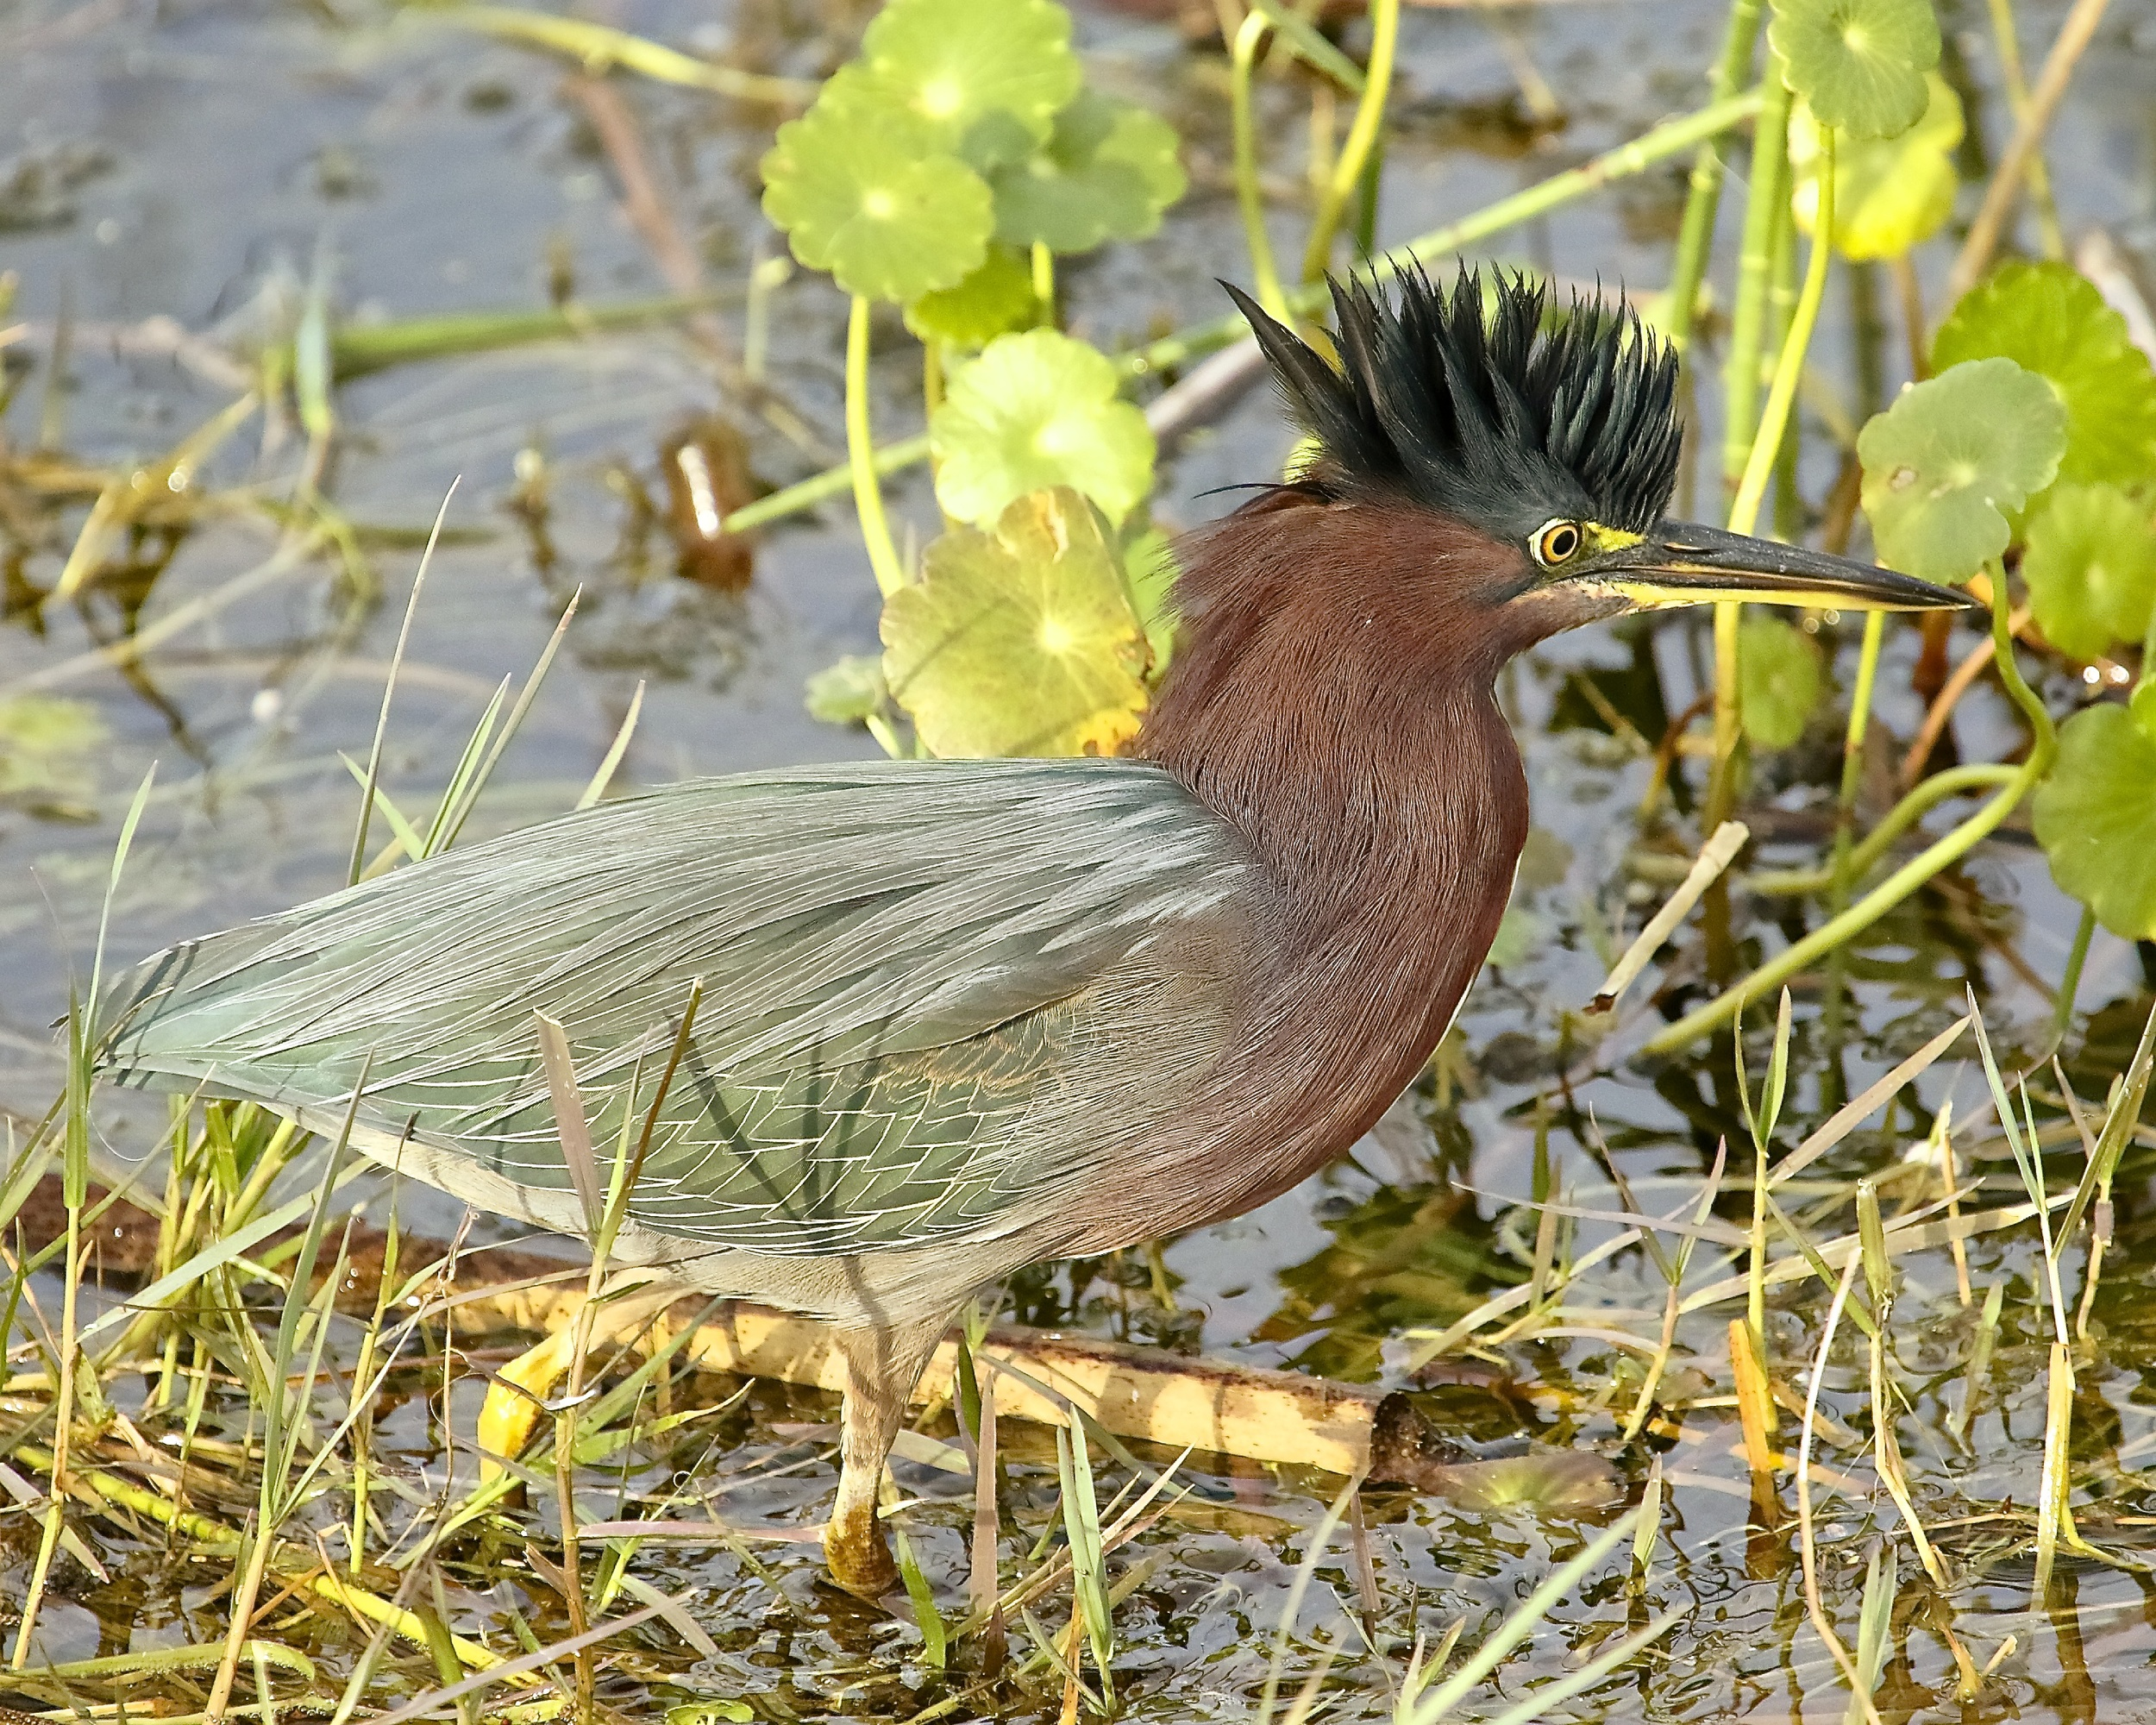 Little Green Heron after visit to Janet the hairdresser ! What a doo!